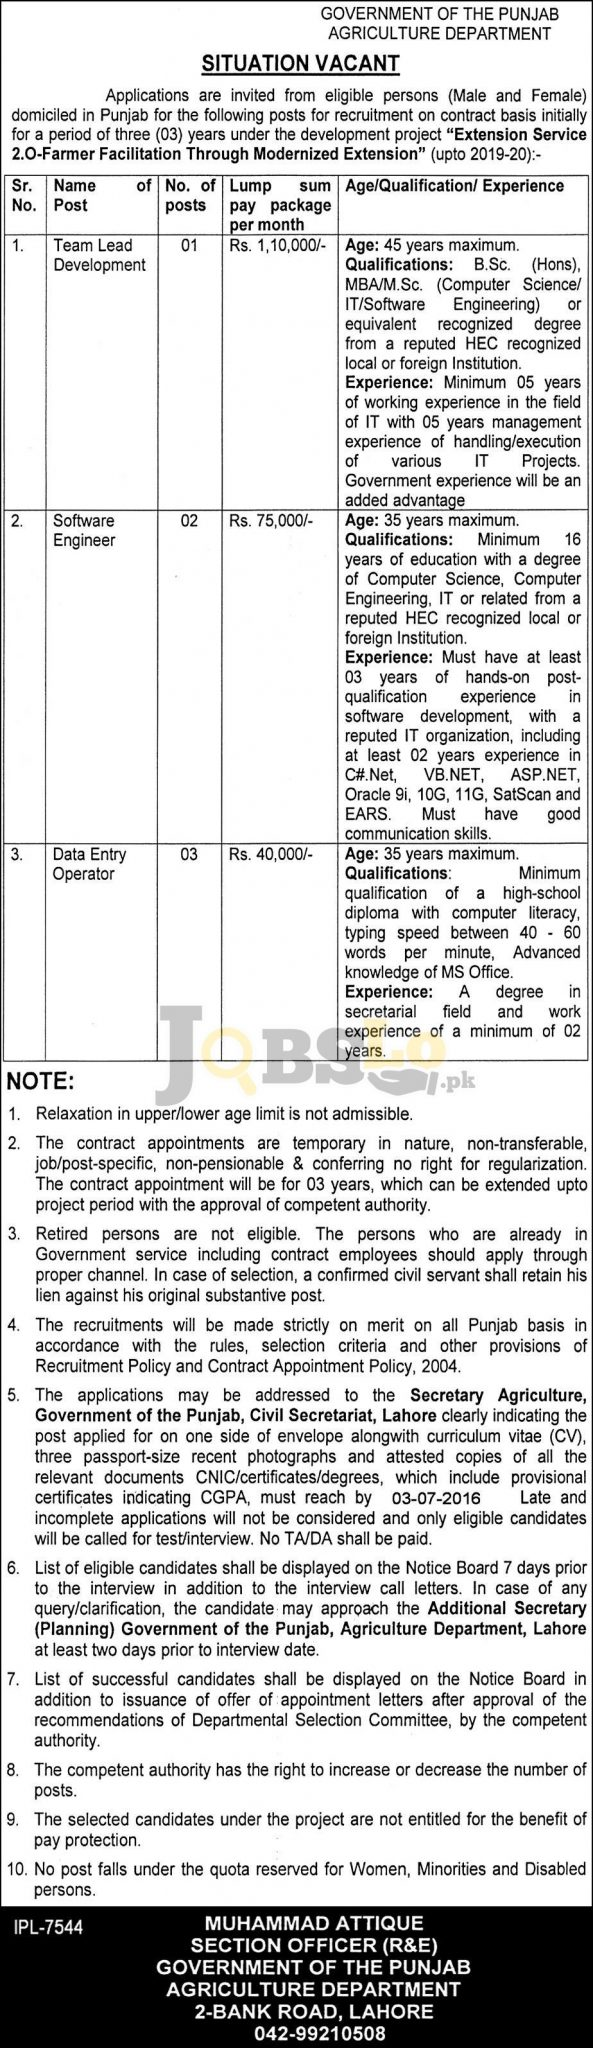 Agriculture Department Jobs